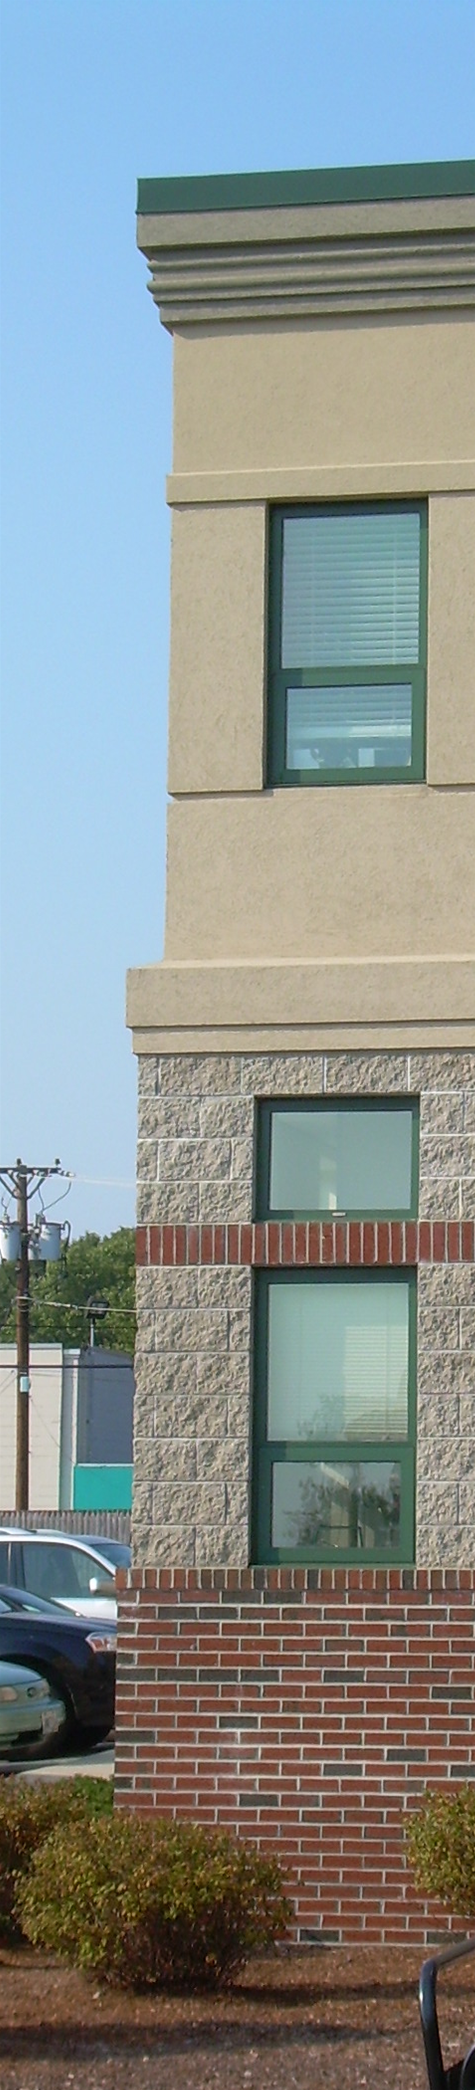 Brick Work on Building